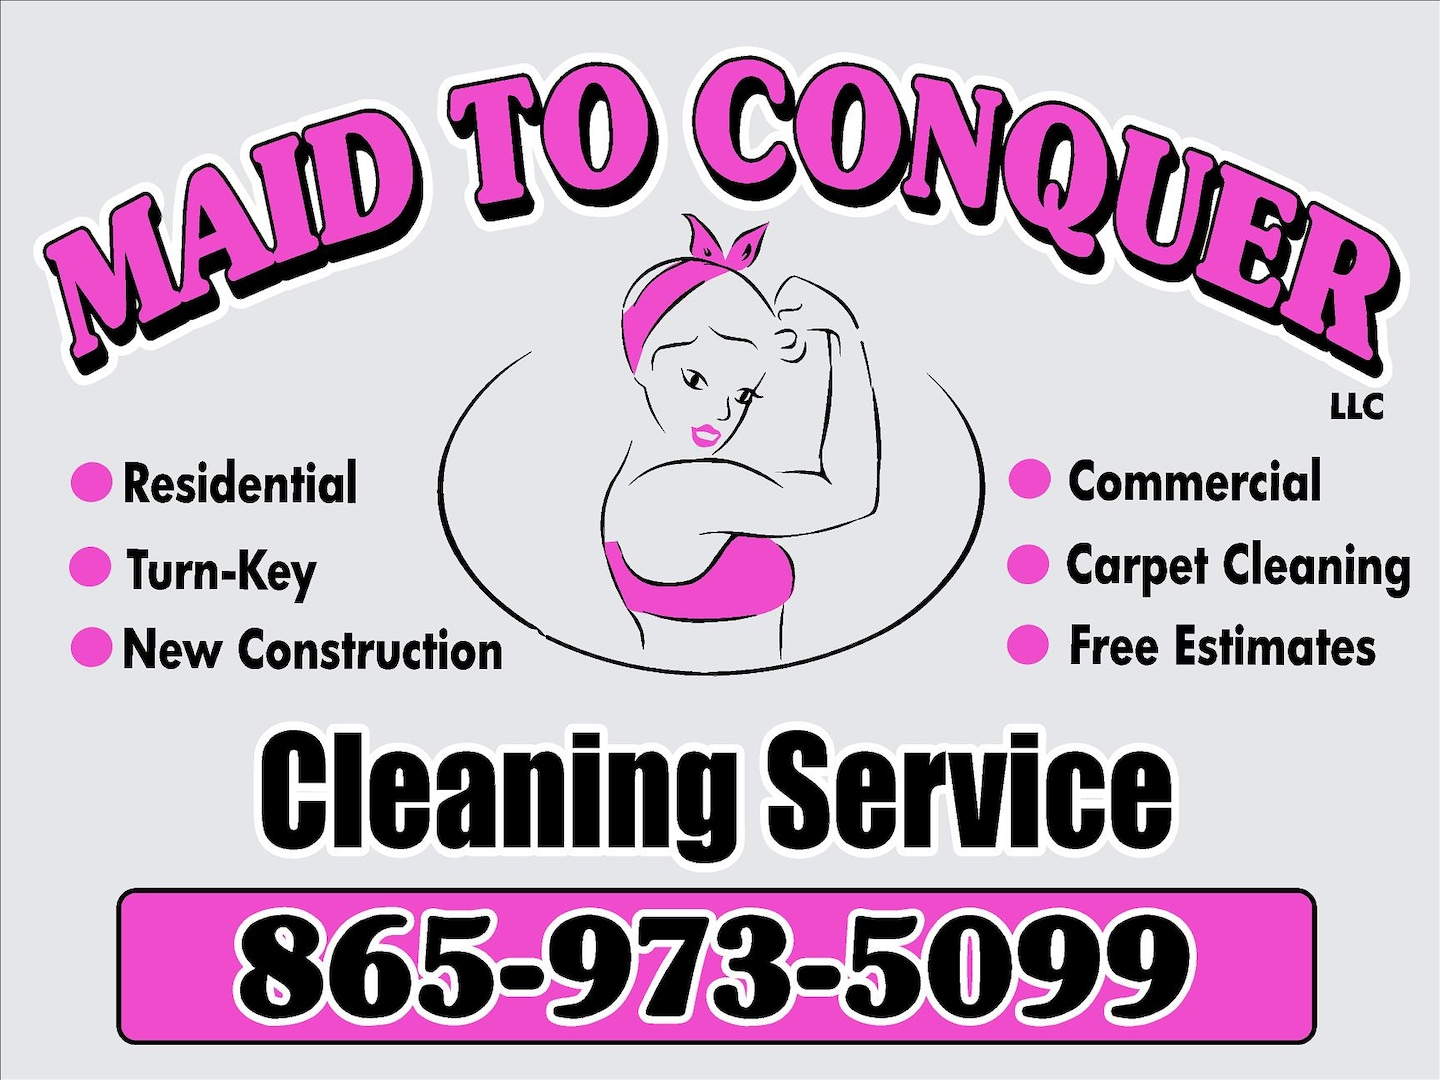 Maid to Conquer, LLC